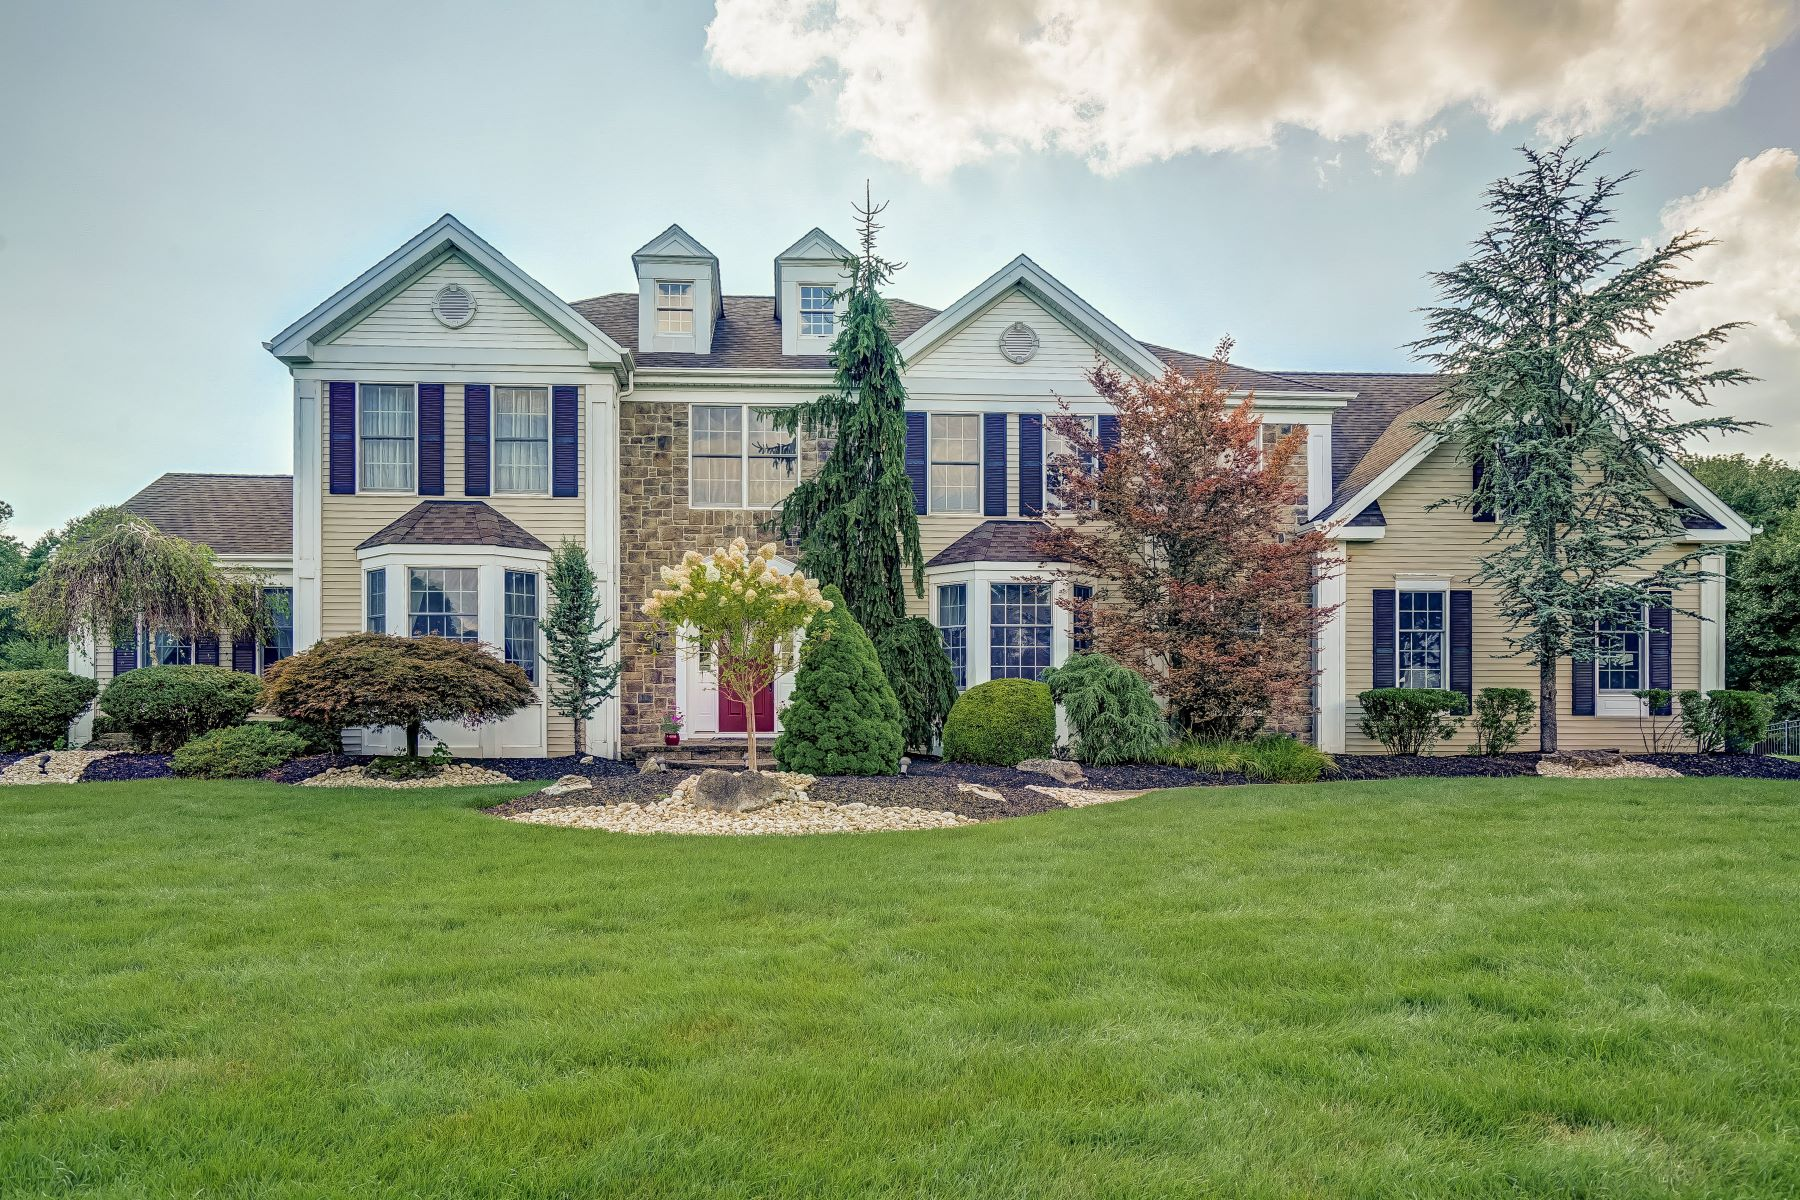 Single Family Home for Sale at Stately Colonial 1035 Chambers Court Bridgewater, New Jersey 08807 United States